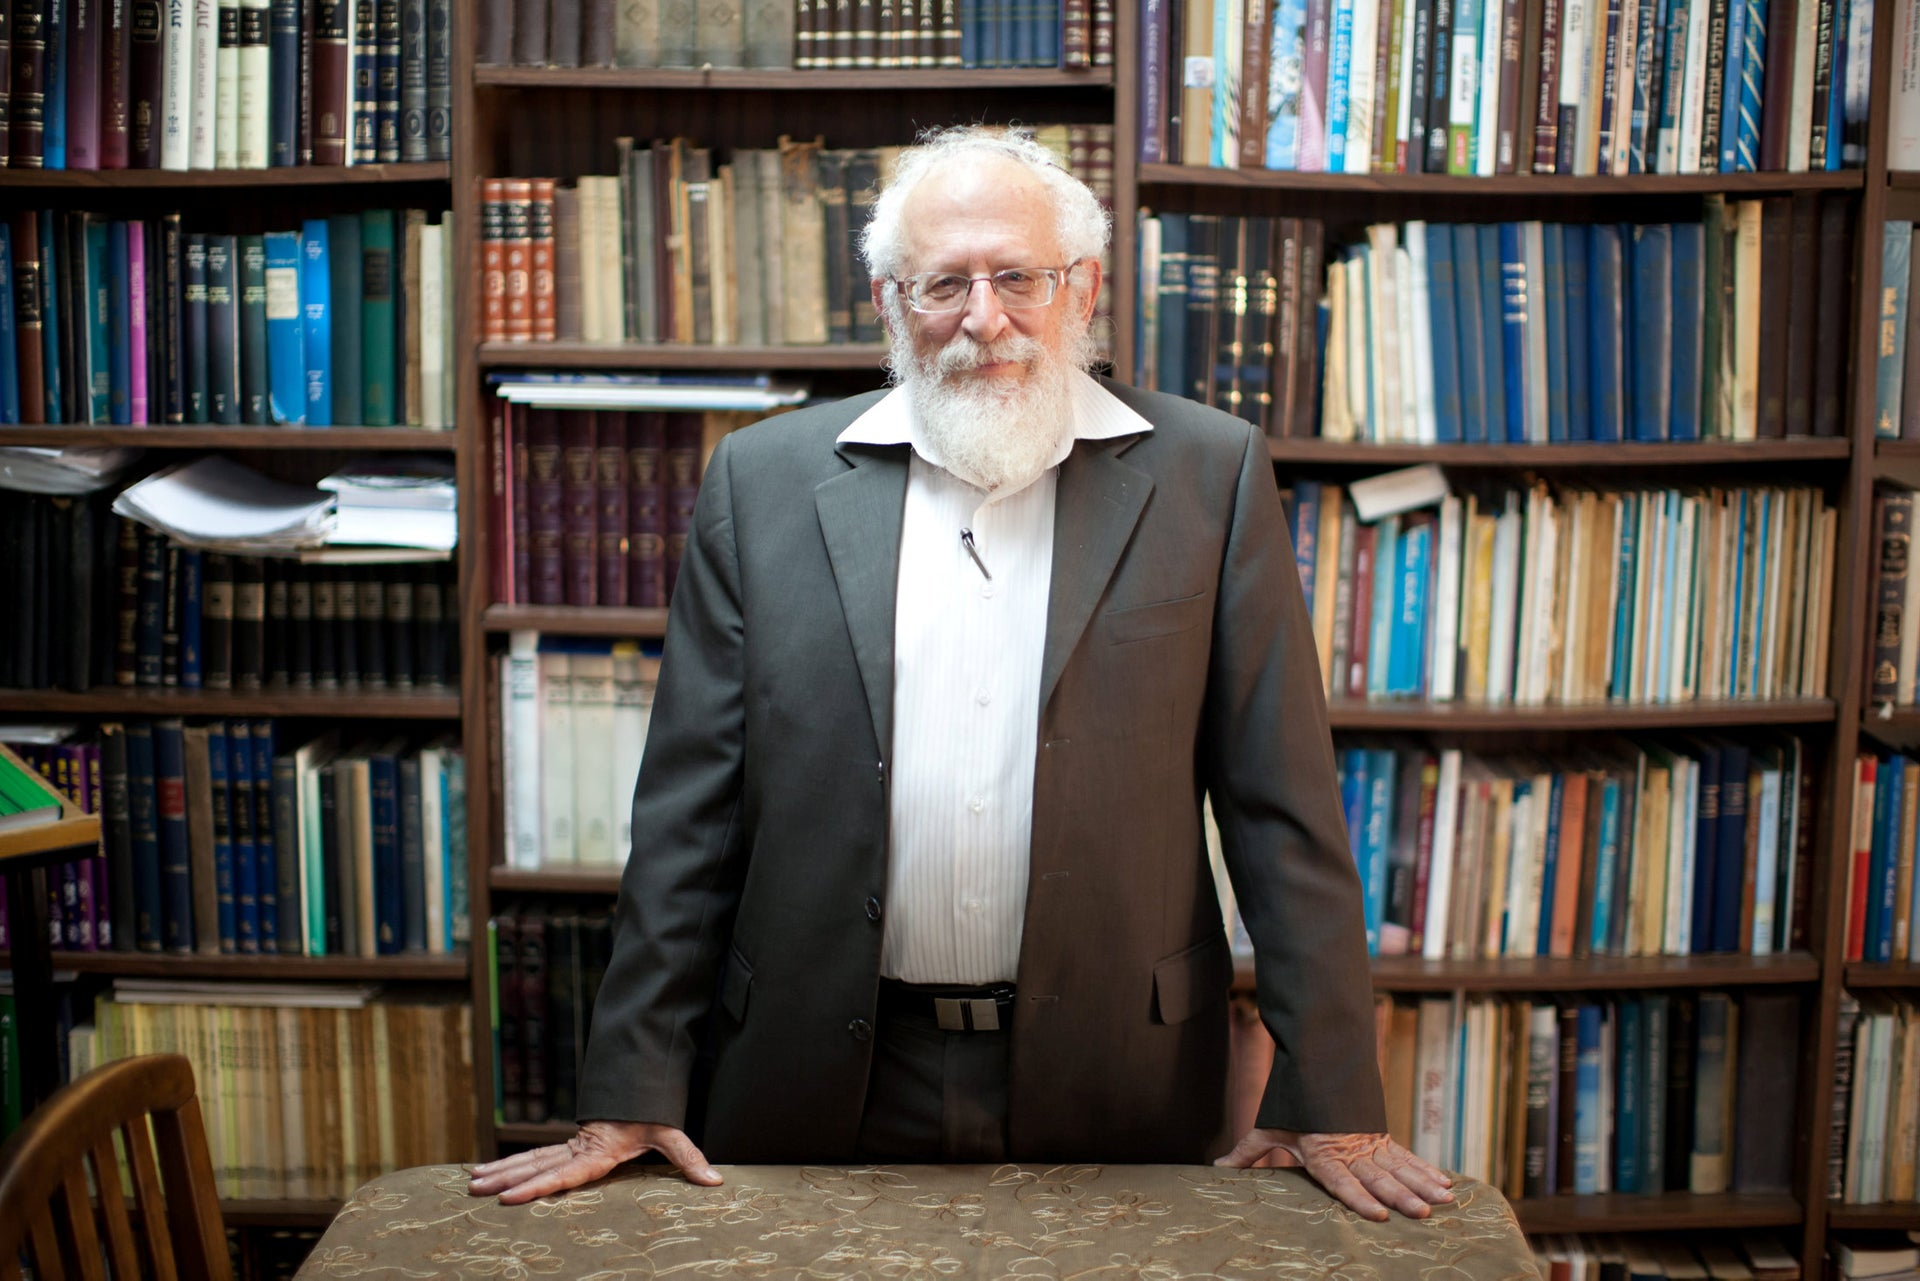 """Rabbi Yisrael Rosen, a prominent figure in the settler movement, broadened Orbach's famous call to arms: """"We will conquer Israeli democracy from within."""""""